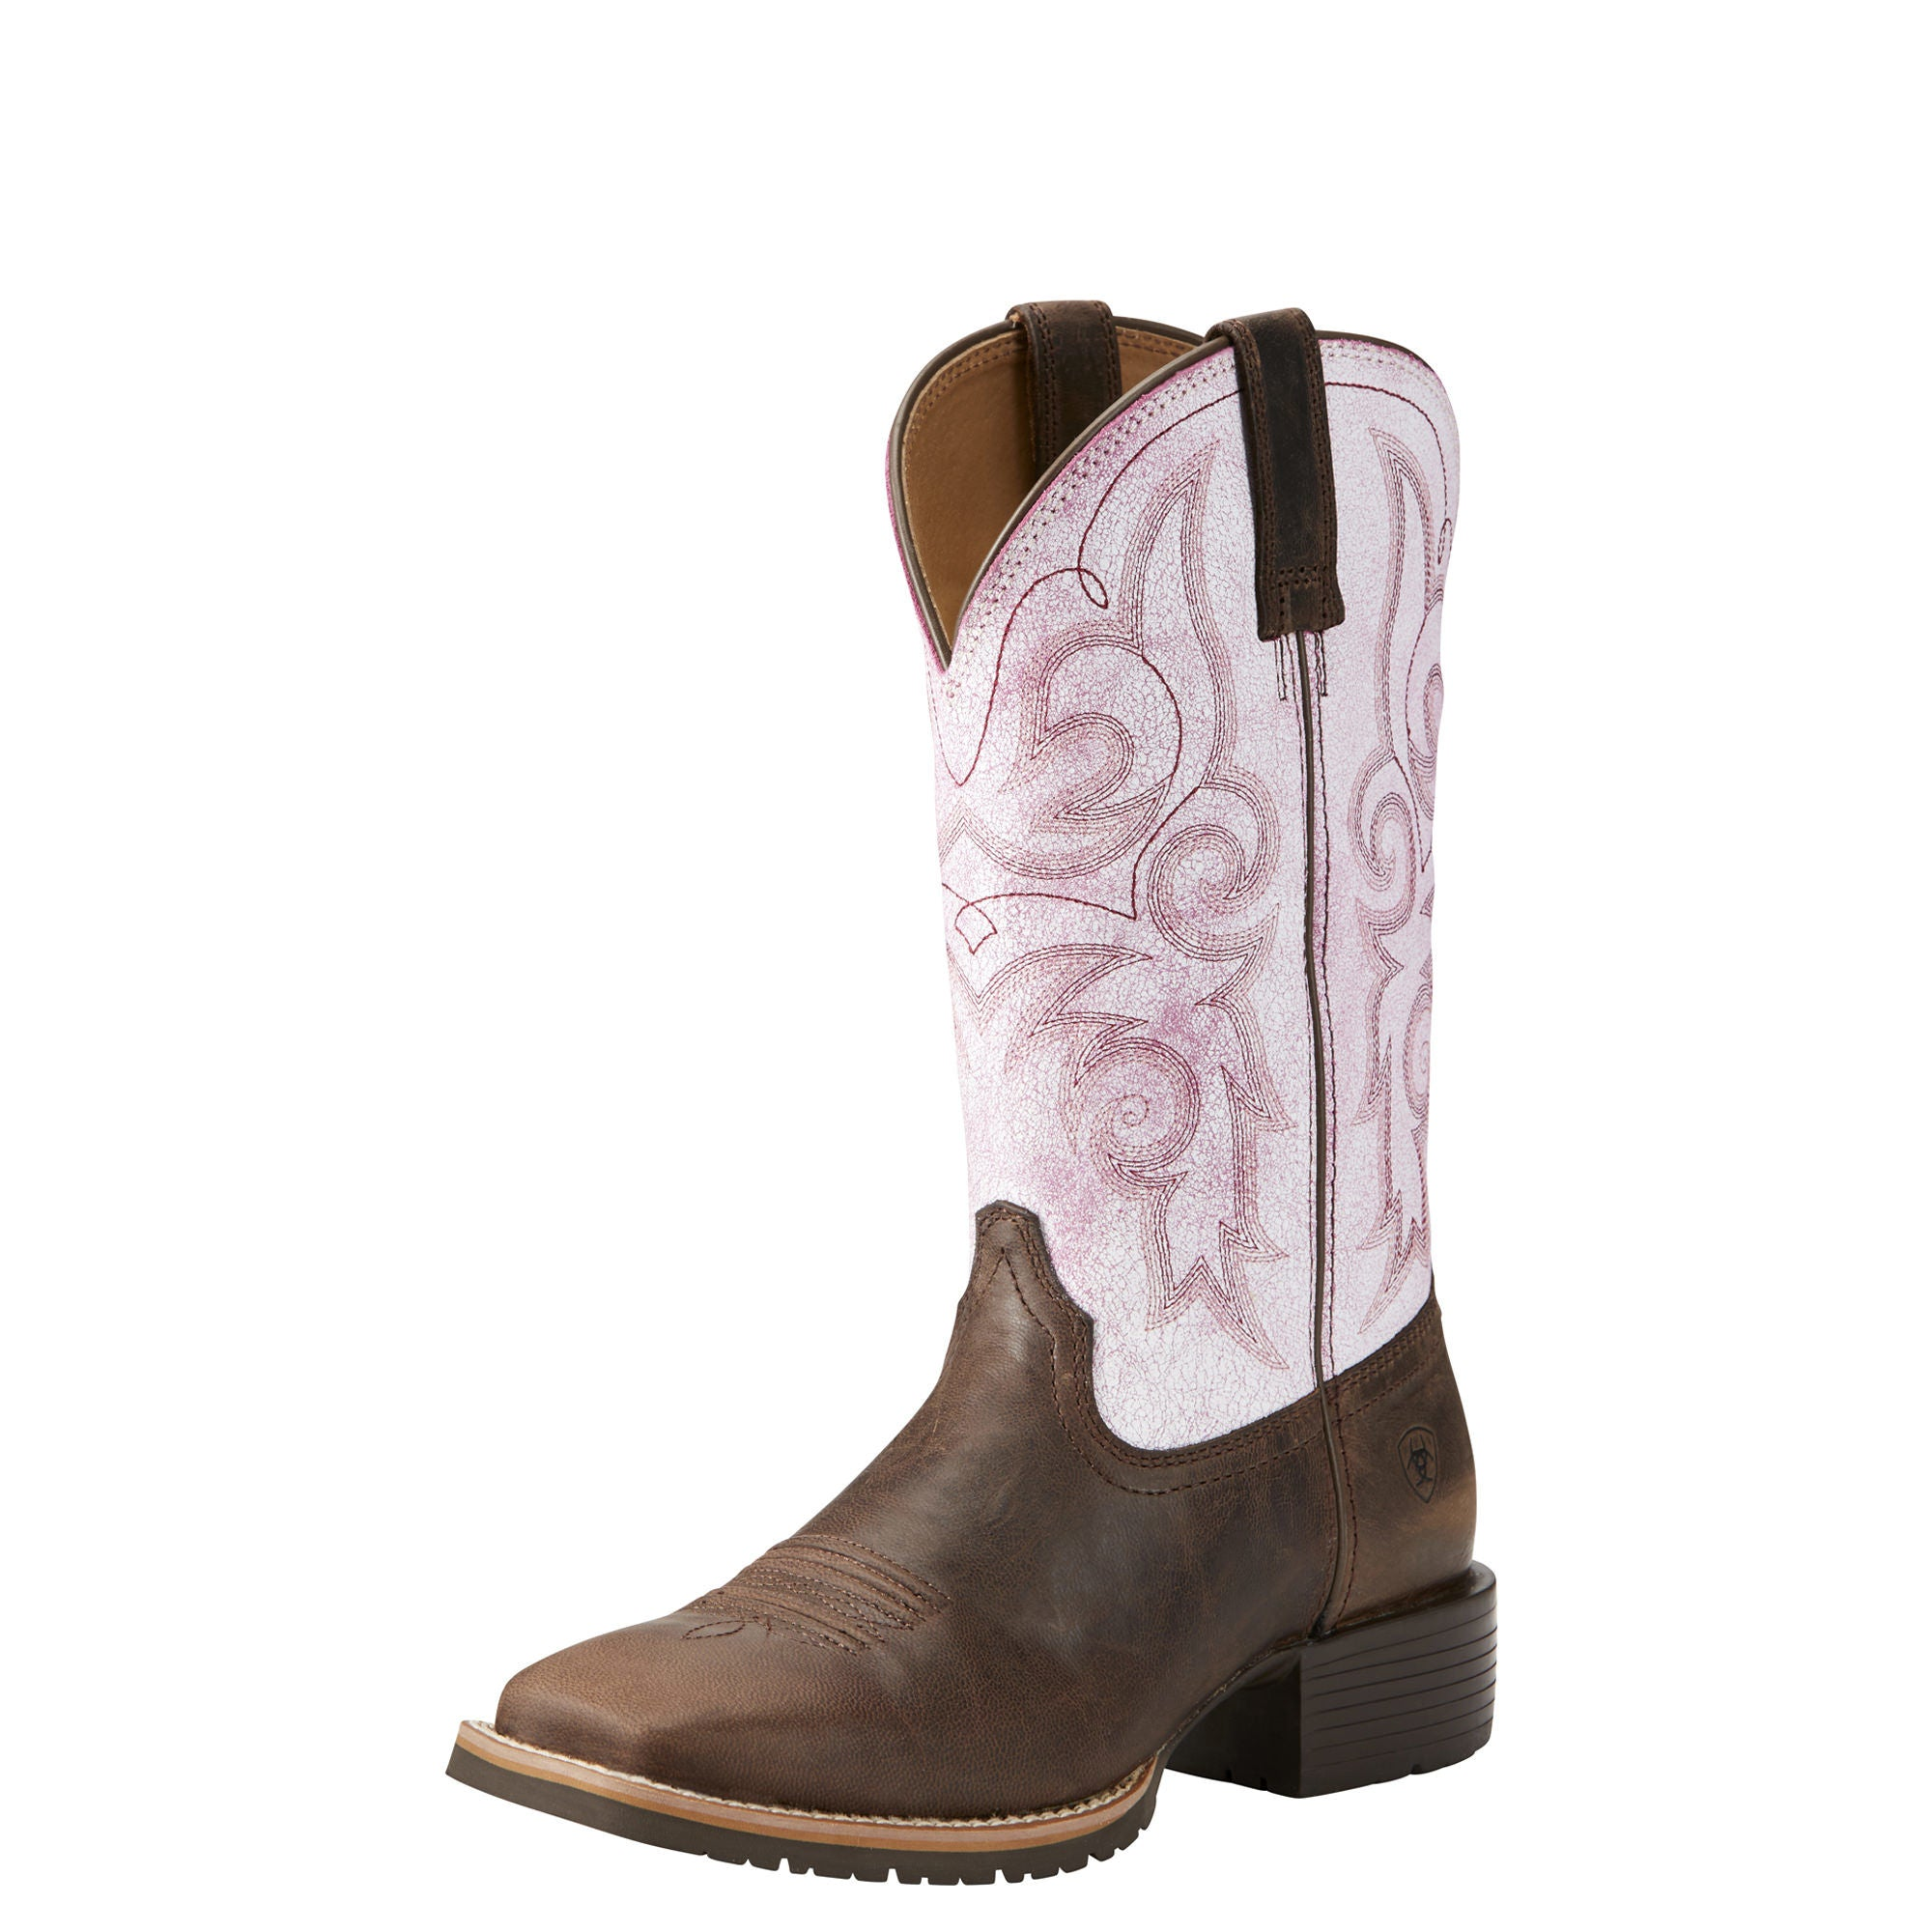 Women's Ariat Hybrid Rancher Wide Square Toe Boot